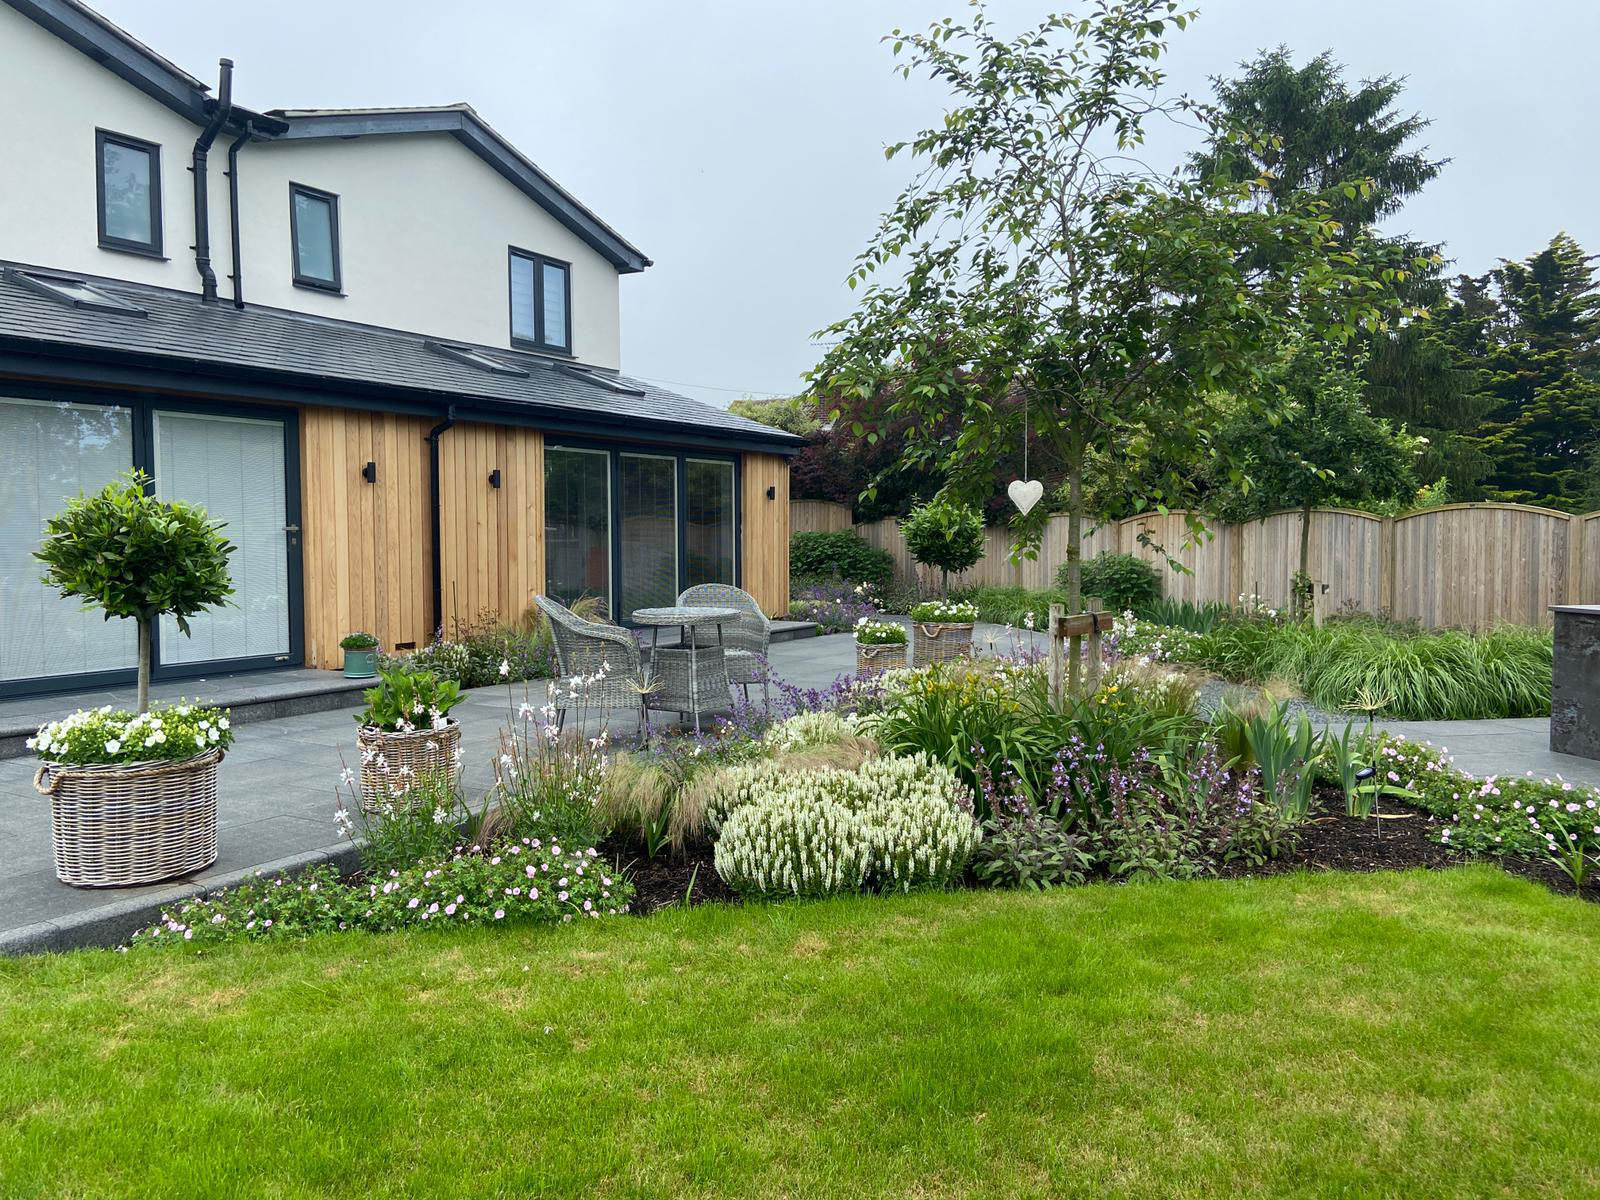 modern house with lawns and beautiful planting scheme